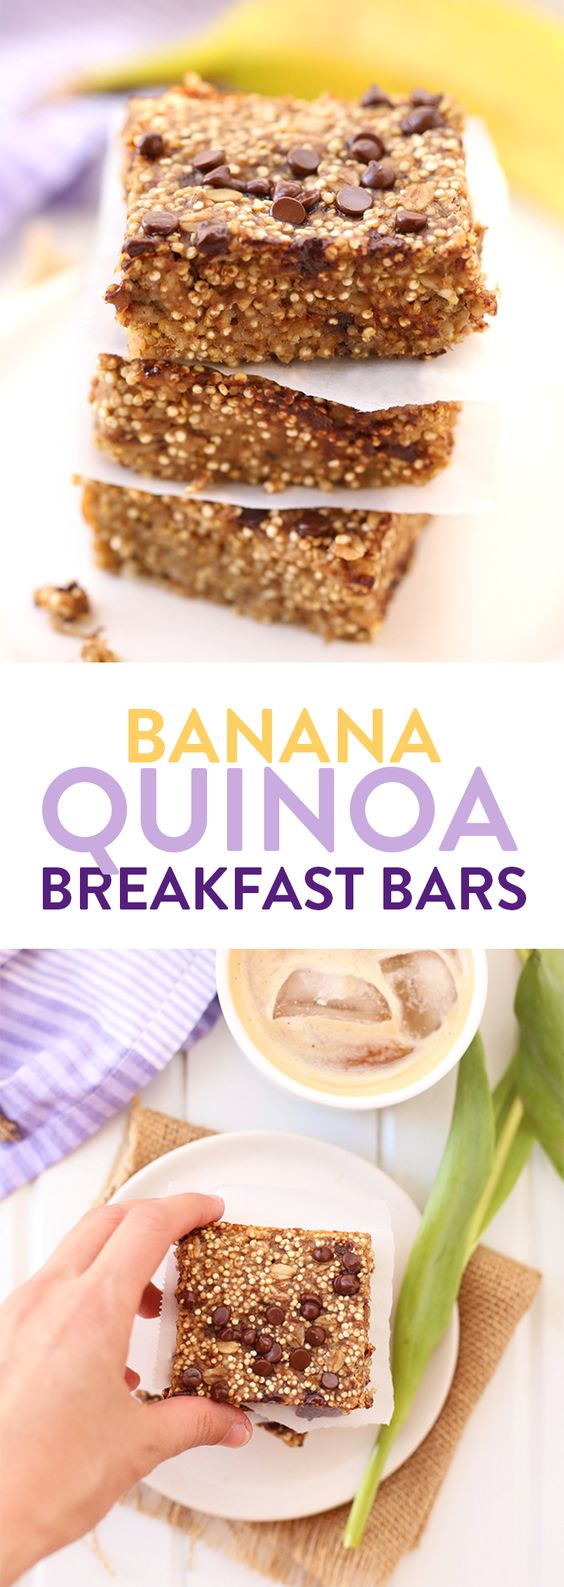 For a quick and healthy snack on the run grab one of these banana quinoa breakfast bars made with quinoa, rolled oats and dairy-free chocolate chips. #vegan #glutenfree #quinoabars